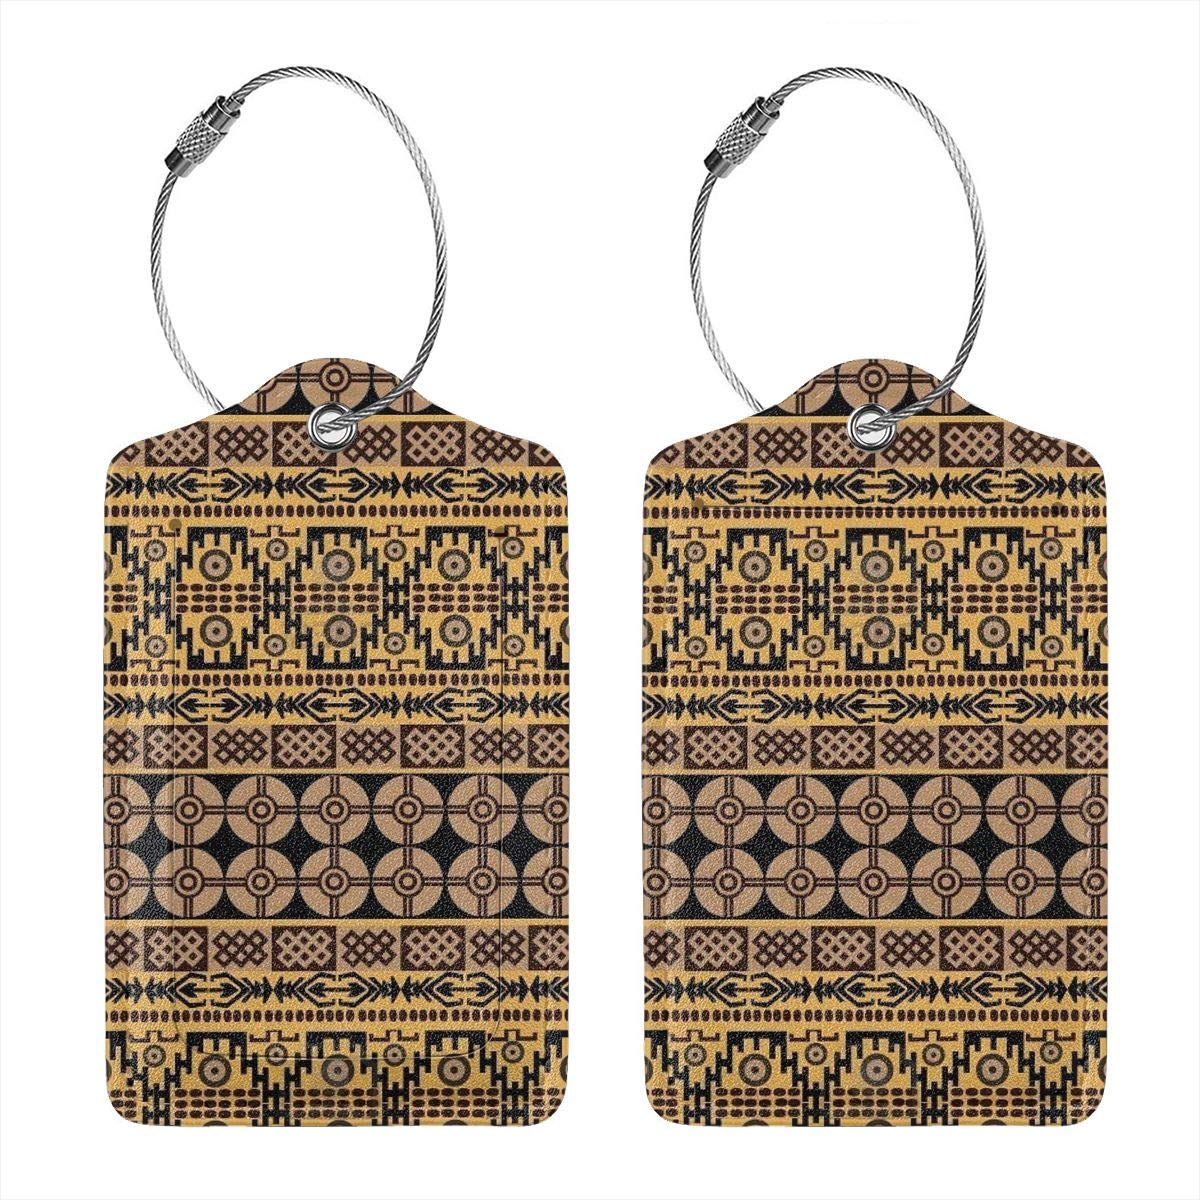 Leather Luggage Tags Full Privacy Cover and Stainless Steel Loop 1 2 4 Pcs Set African Ethnic Pattern 2.7 x 4.6 Blank Tag Key Tags for Instrument Baggage Bag Gift